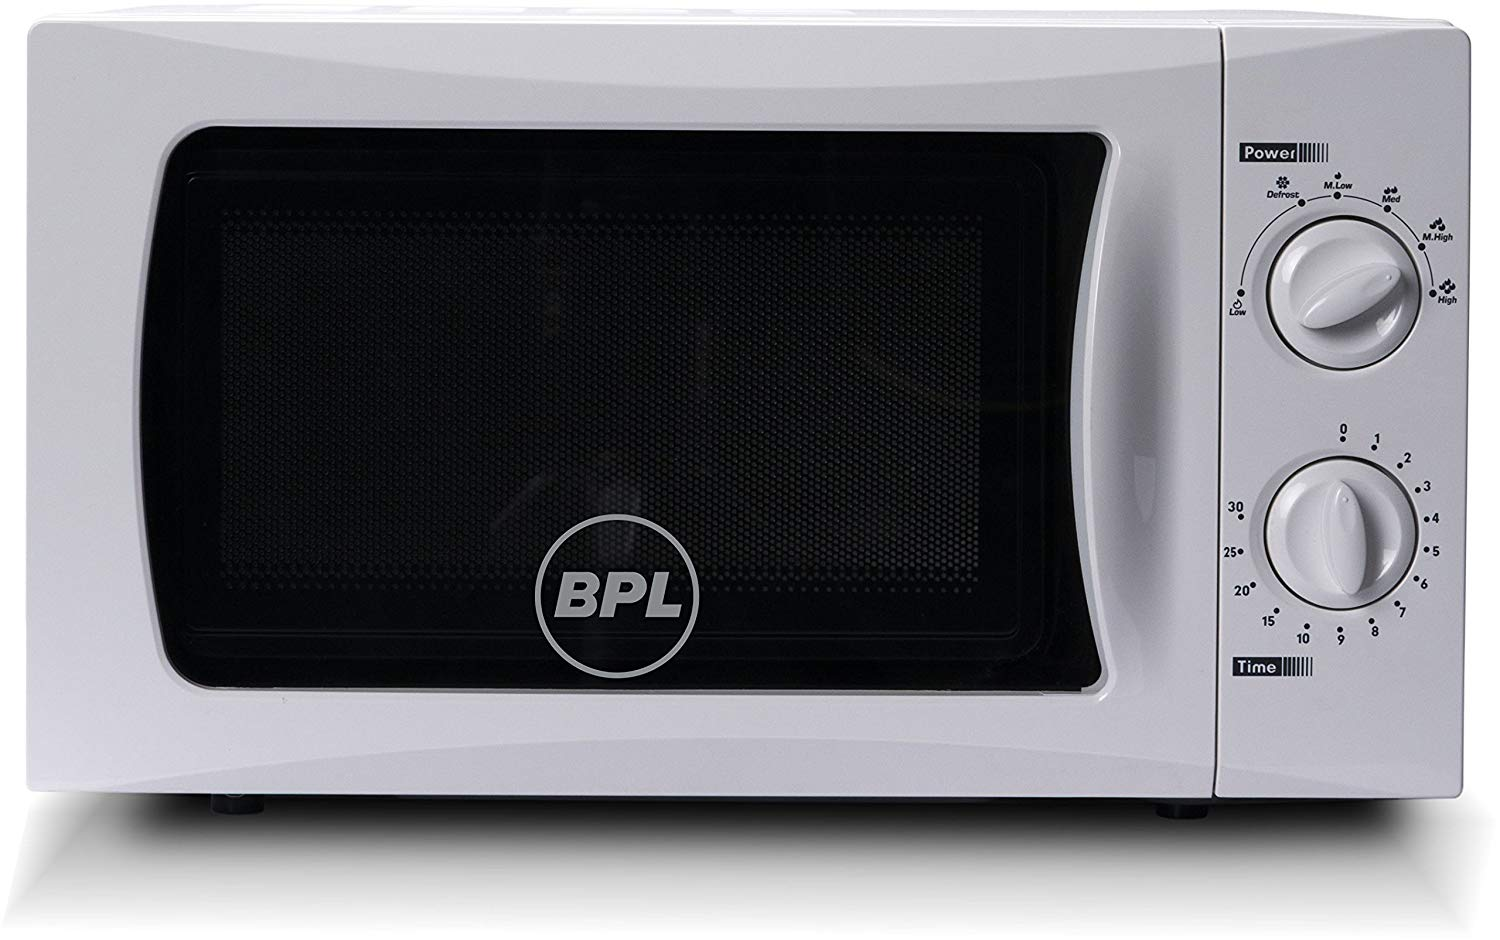 BPL 20 L Solo Microwave Oven - BPLMW20S1G - White